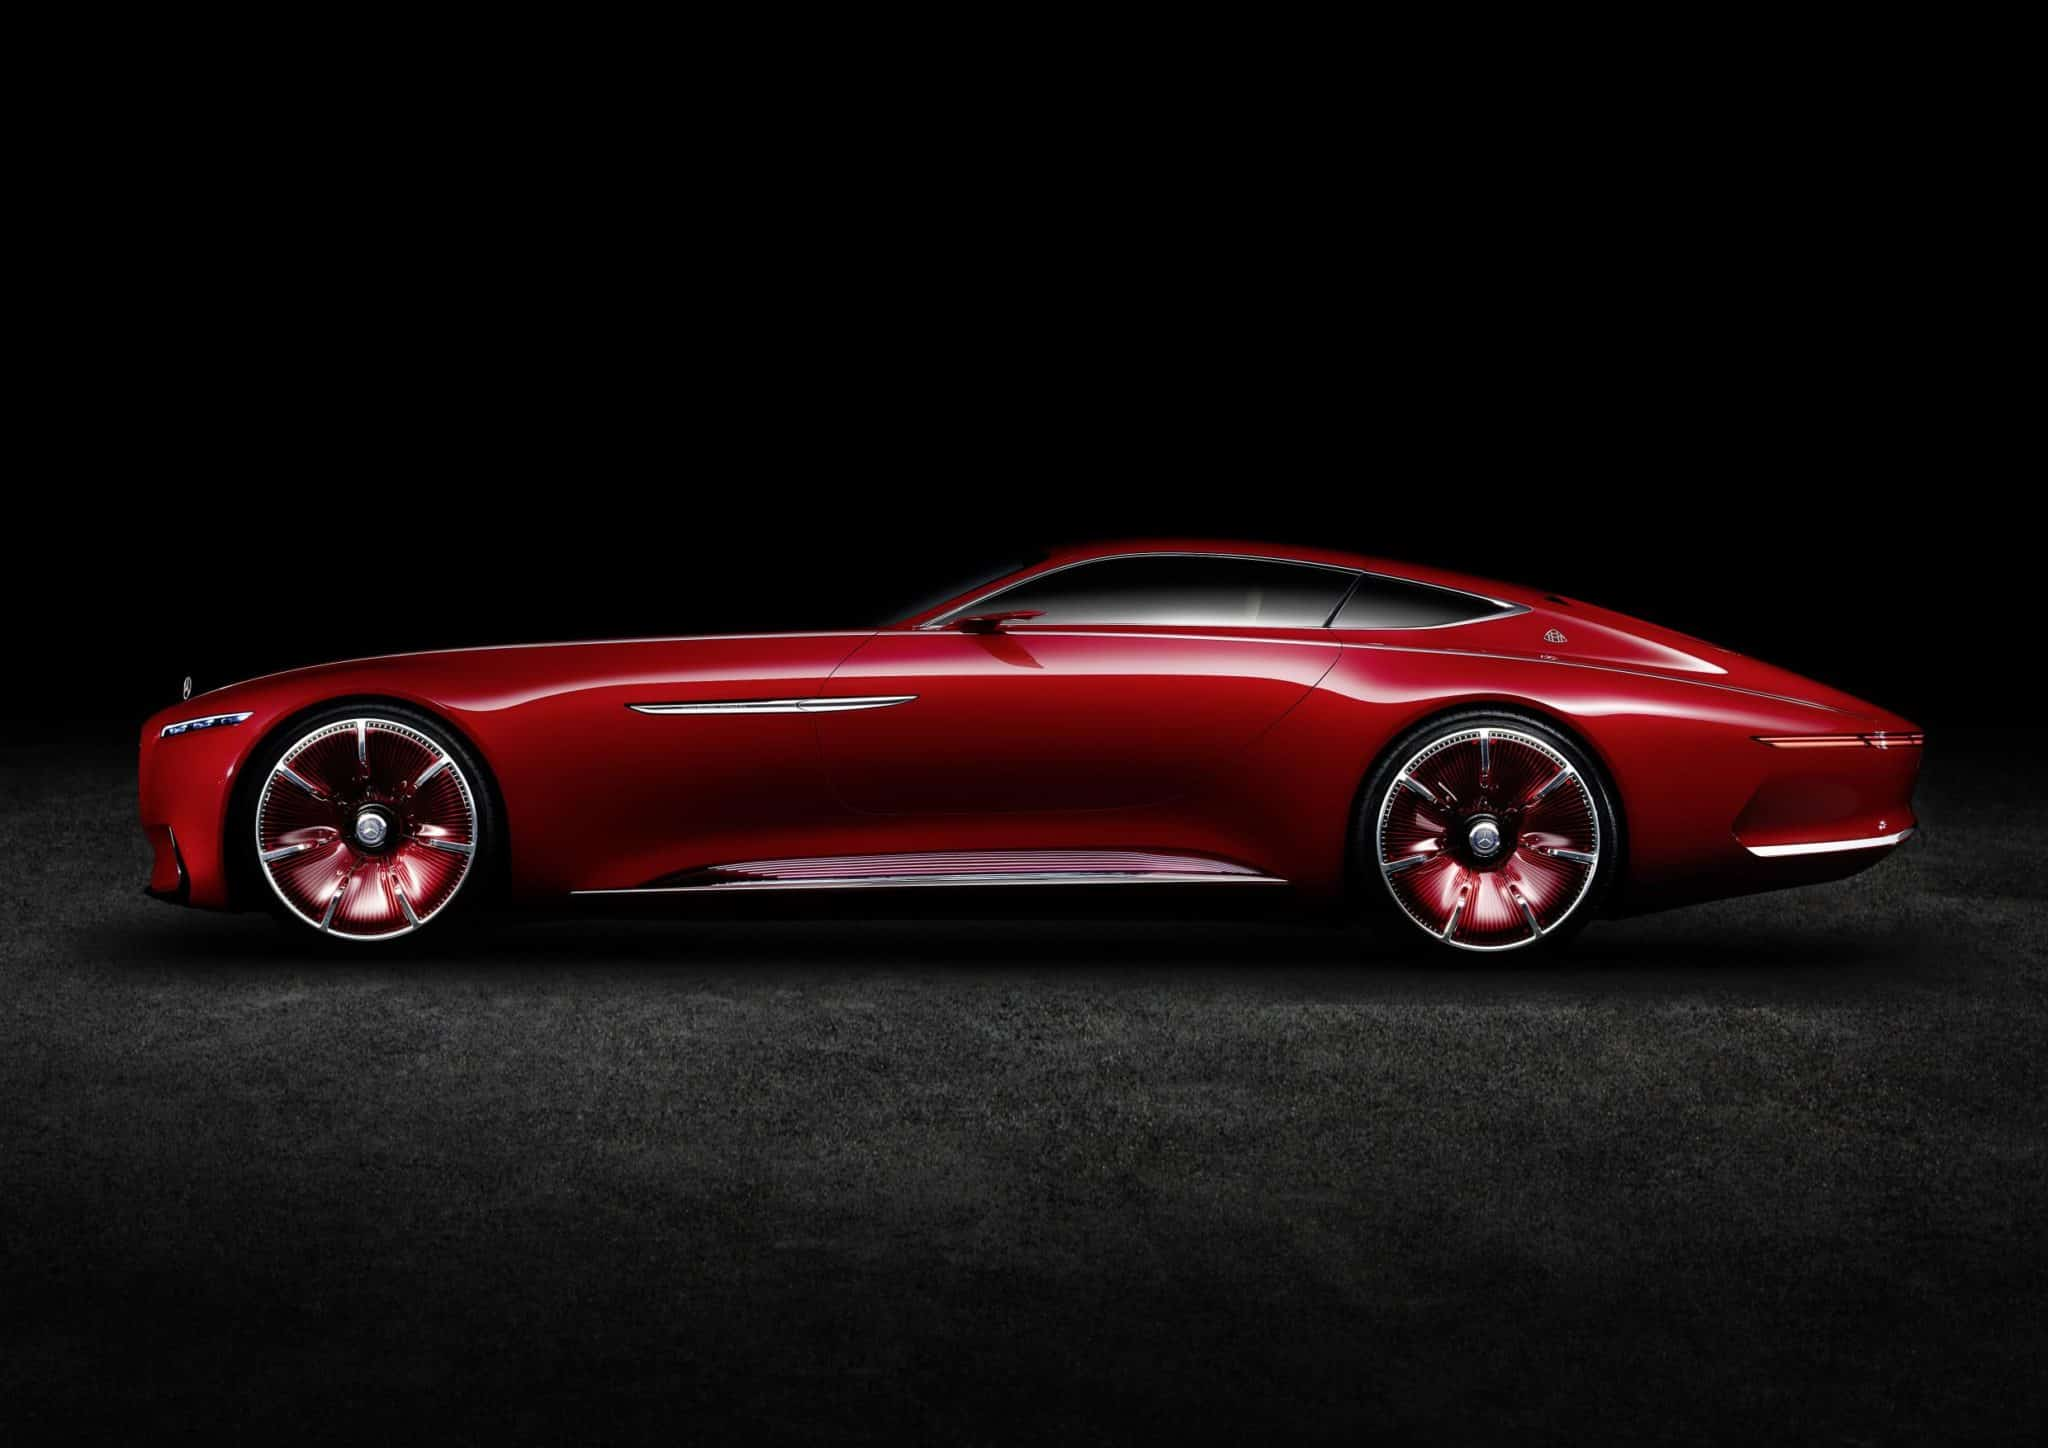 Vision Mercedes-benz Maybach concept car